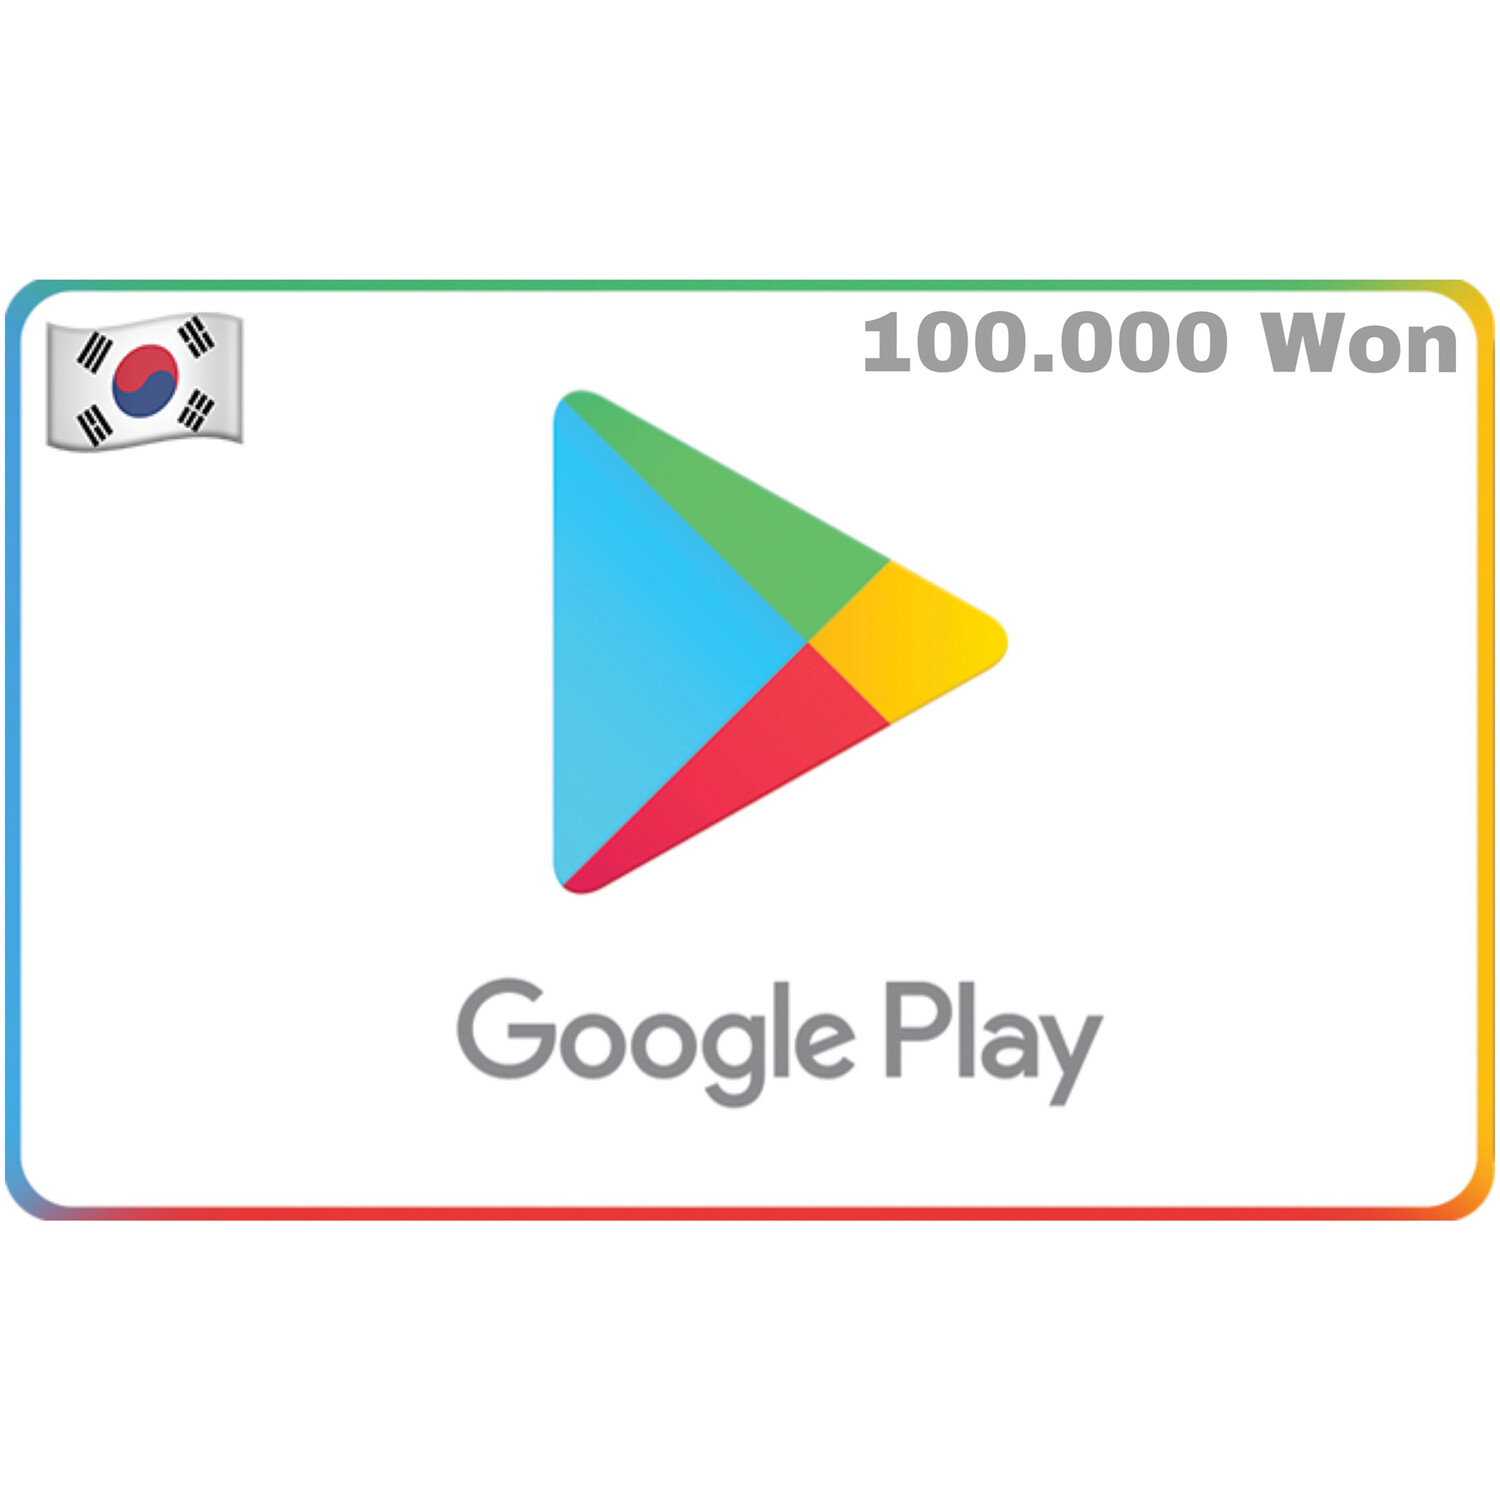 Google Play Korea 100,000 Won